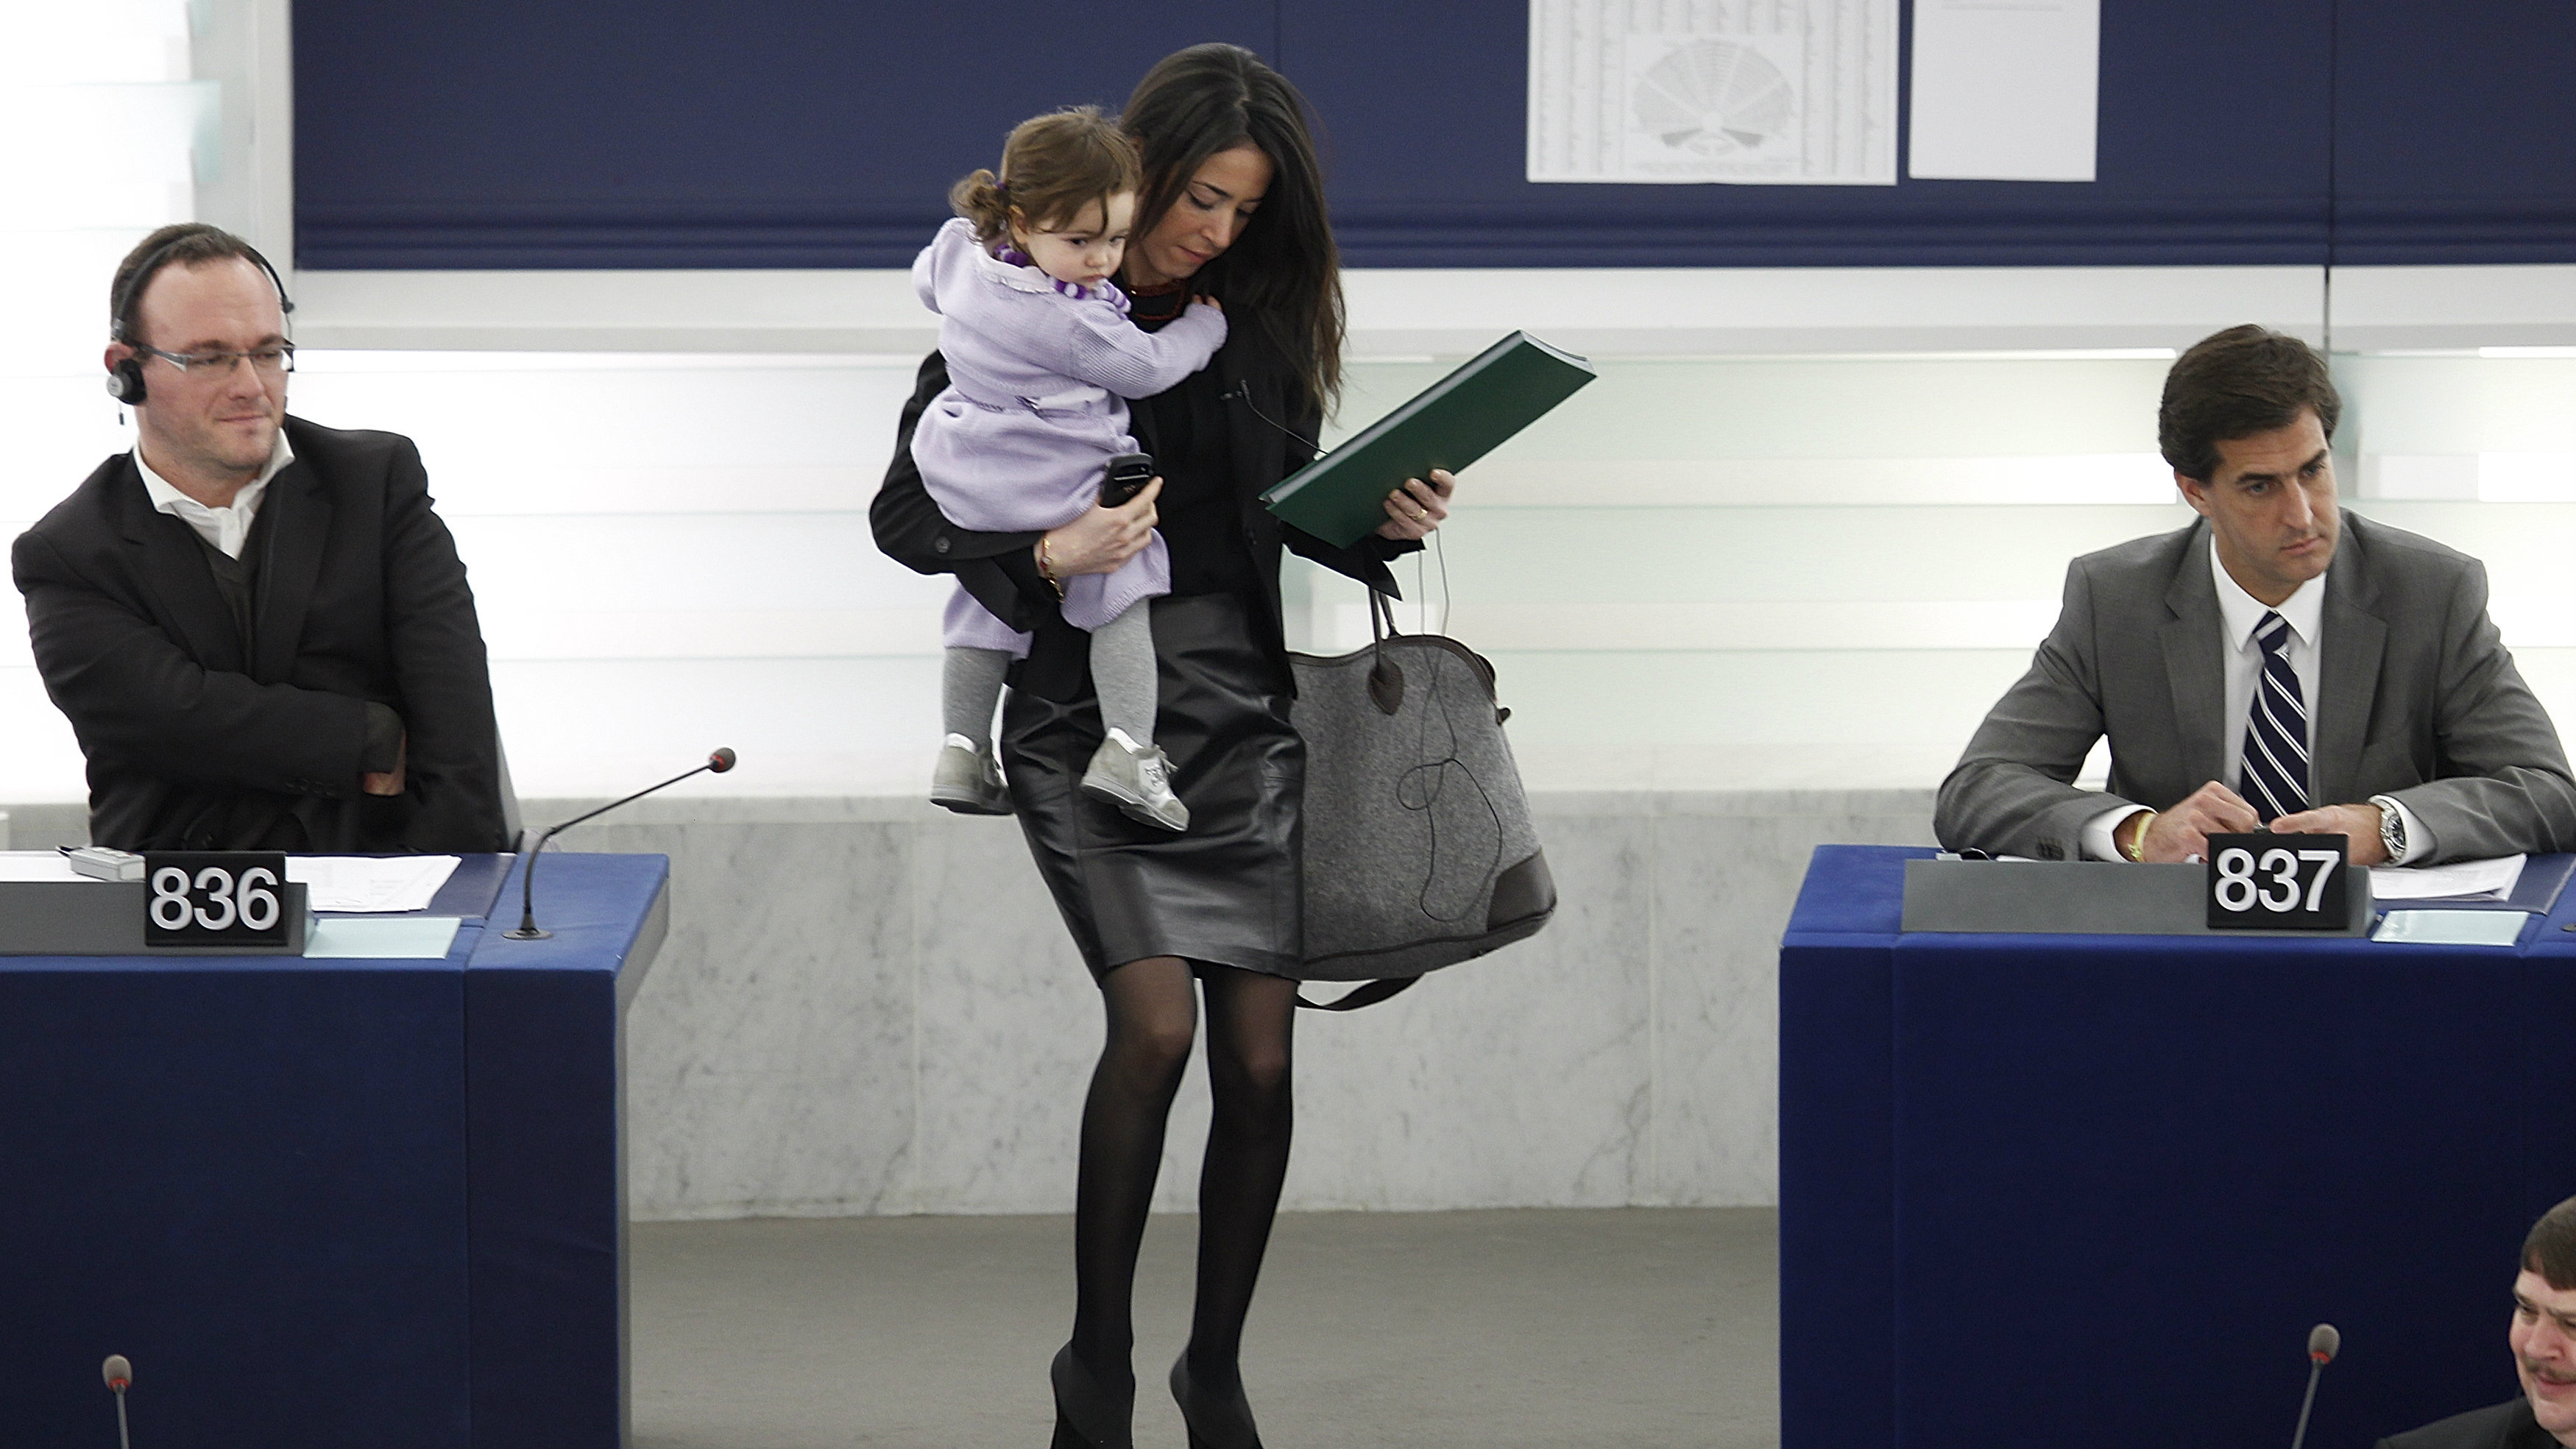 Italian Member of the European Parliament Ronzulli juggling her child, a bag and a folder